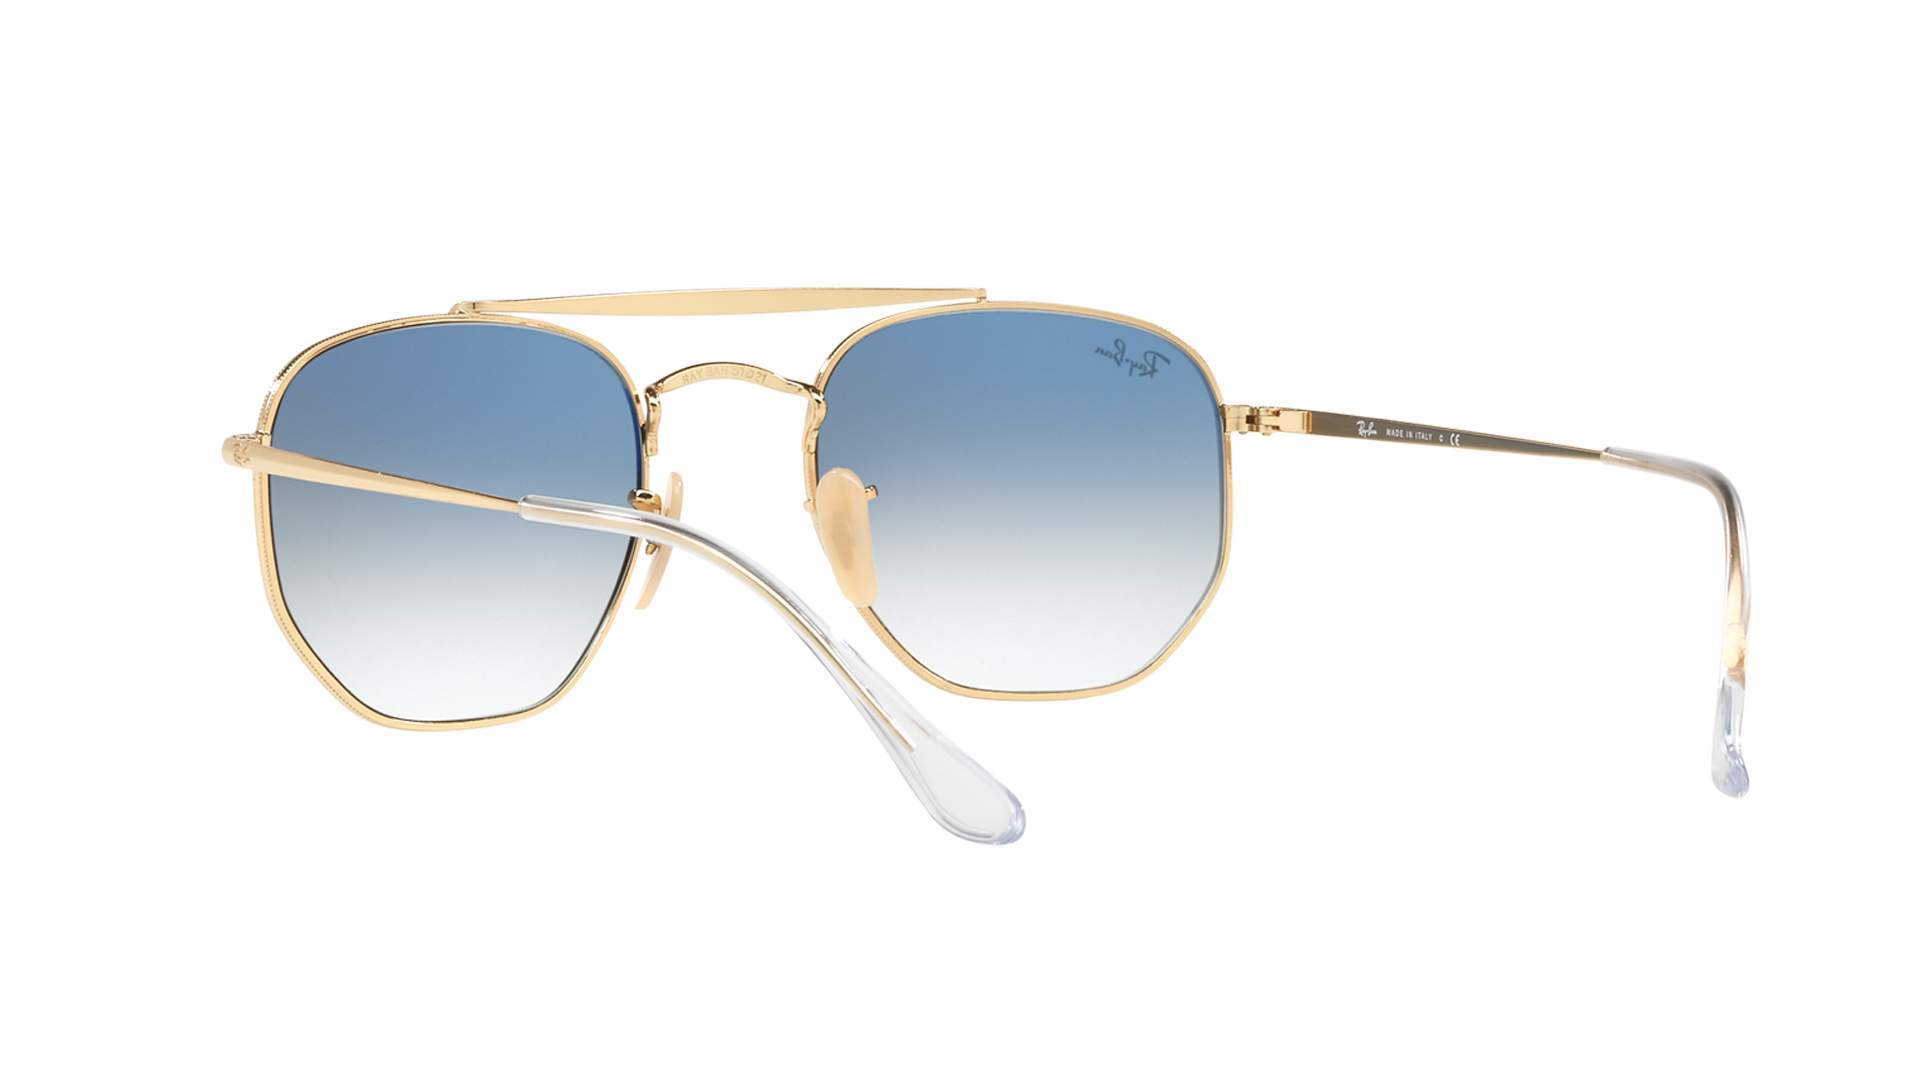 128bcad122030 Sunglasses Ray-Ban Marshal Gold RB3648 001 3F 54-21 Large Gradient